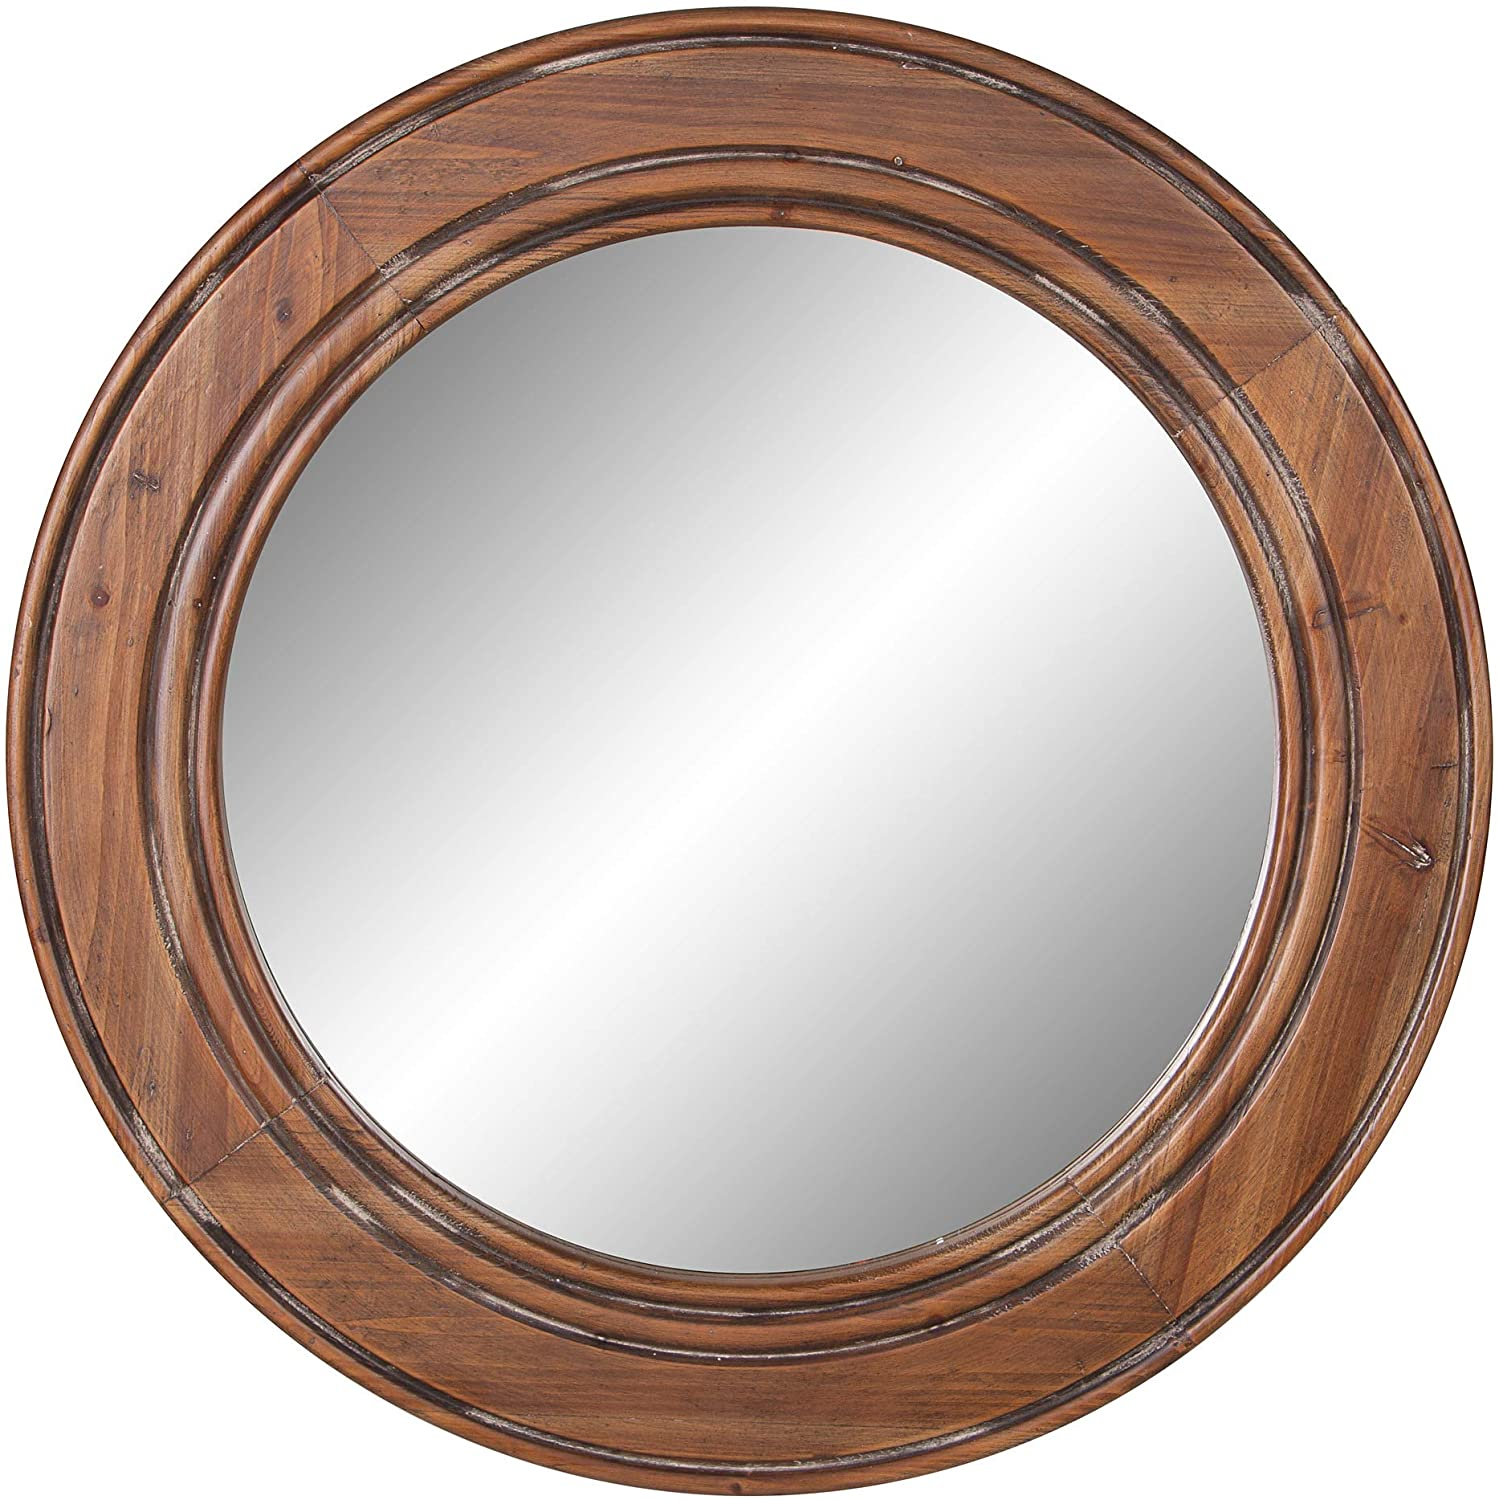 Amazon Com Reclaimed Wood Large Round Wall Accent Mirror Home Kitchen